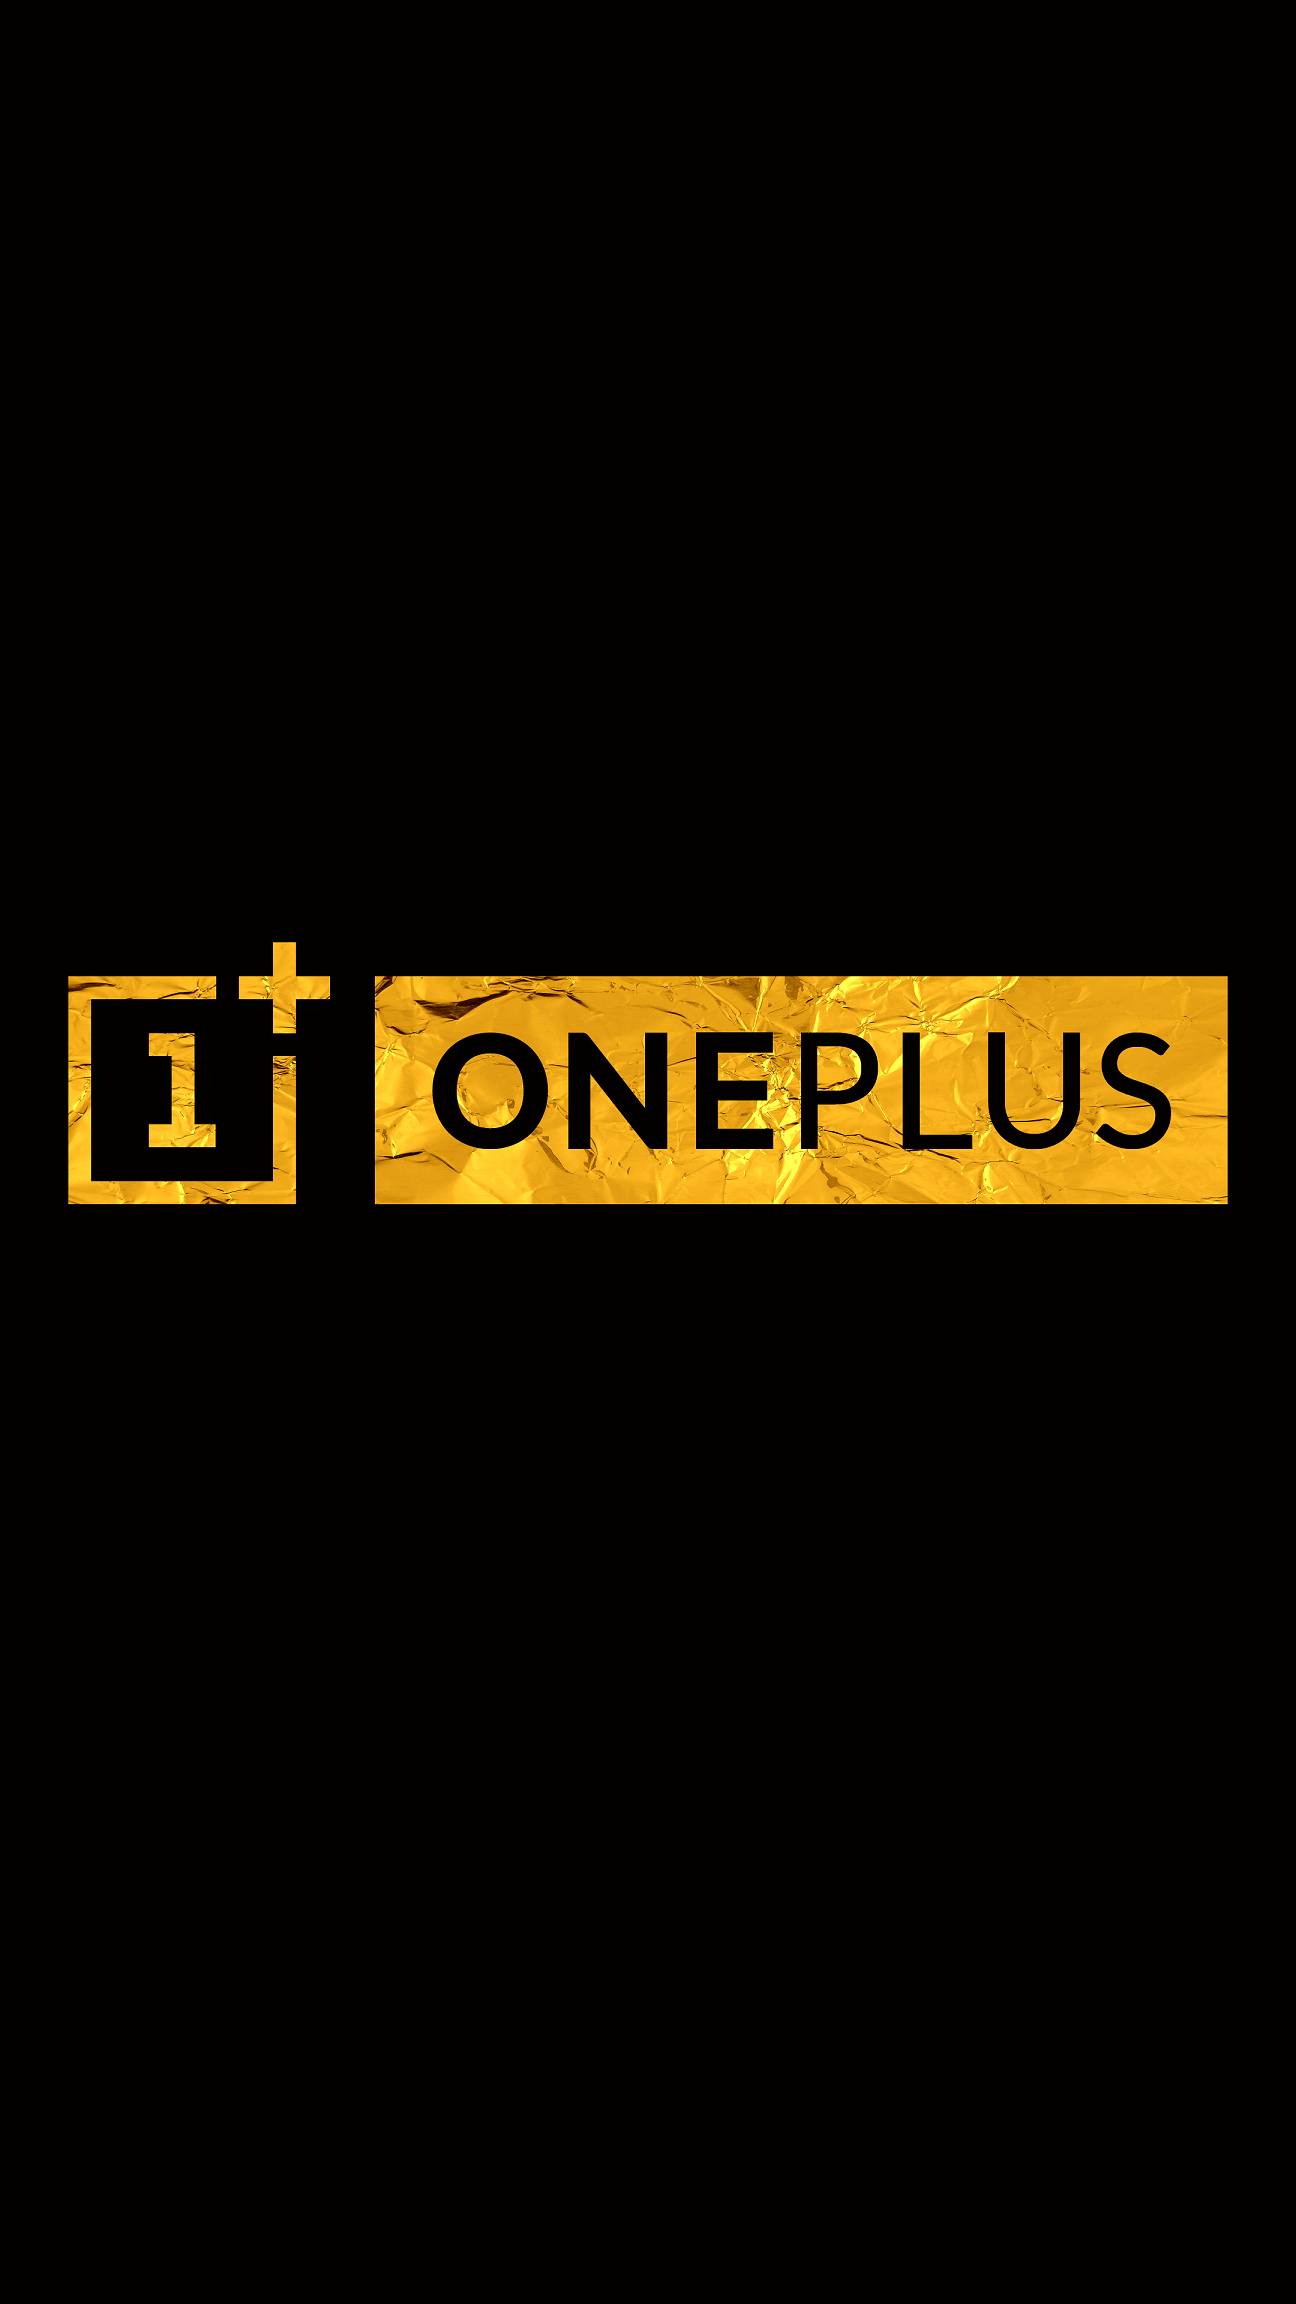 OnePlus 4K Gold AMOLED Logo – Amoled Wallpapers